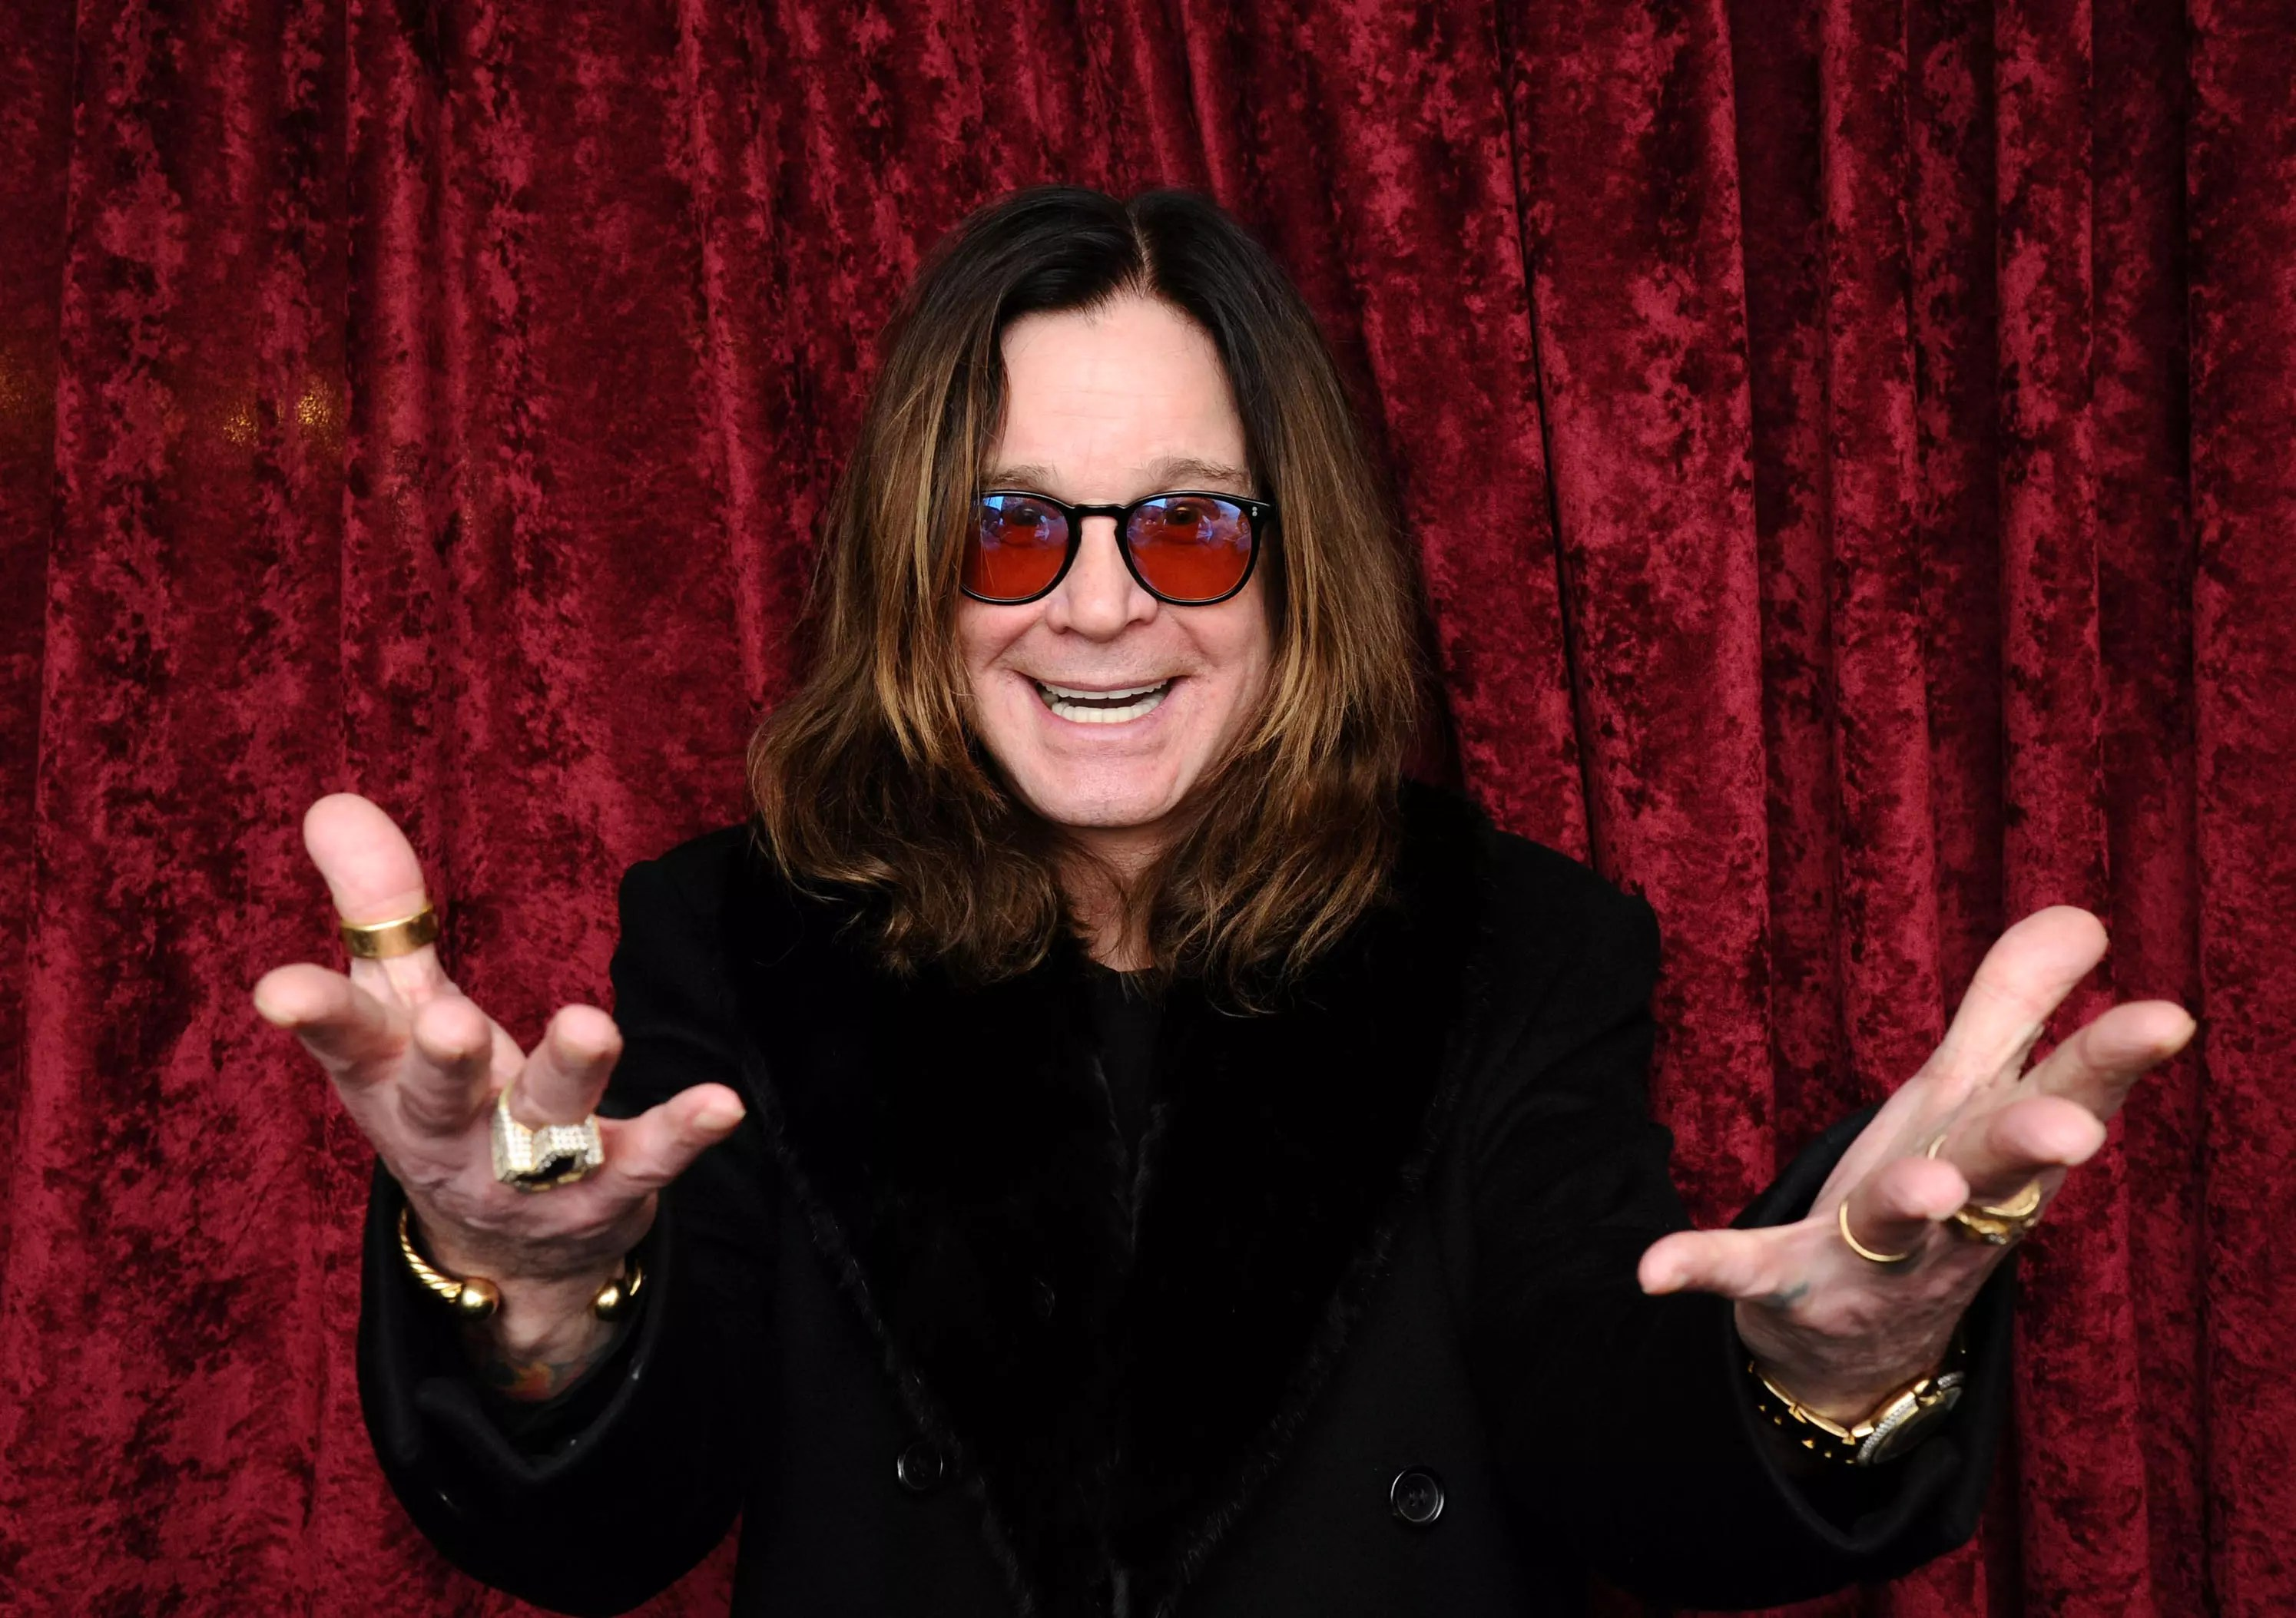 20 Things You Might Not Know About Birthday Boy Ozzy